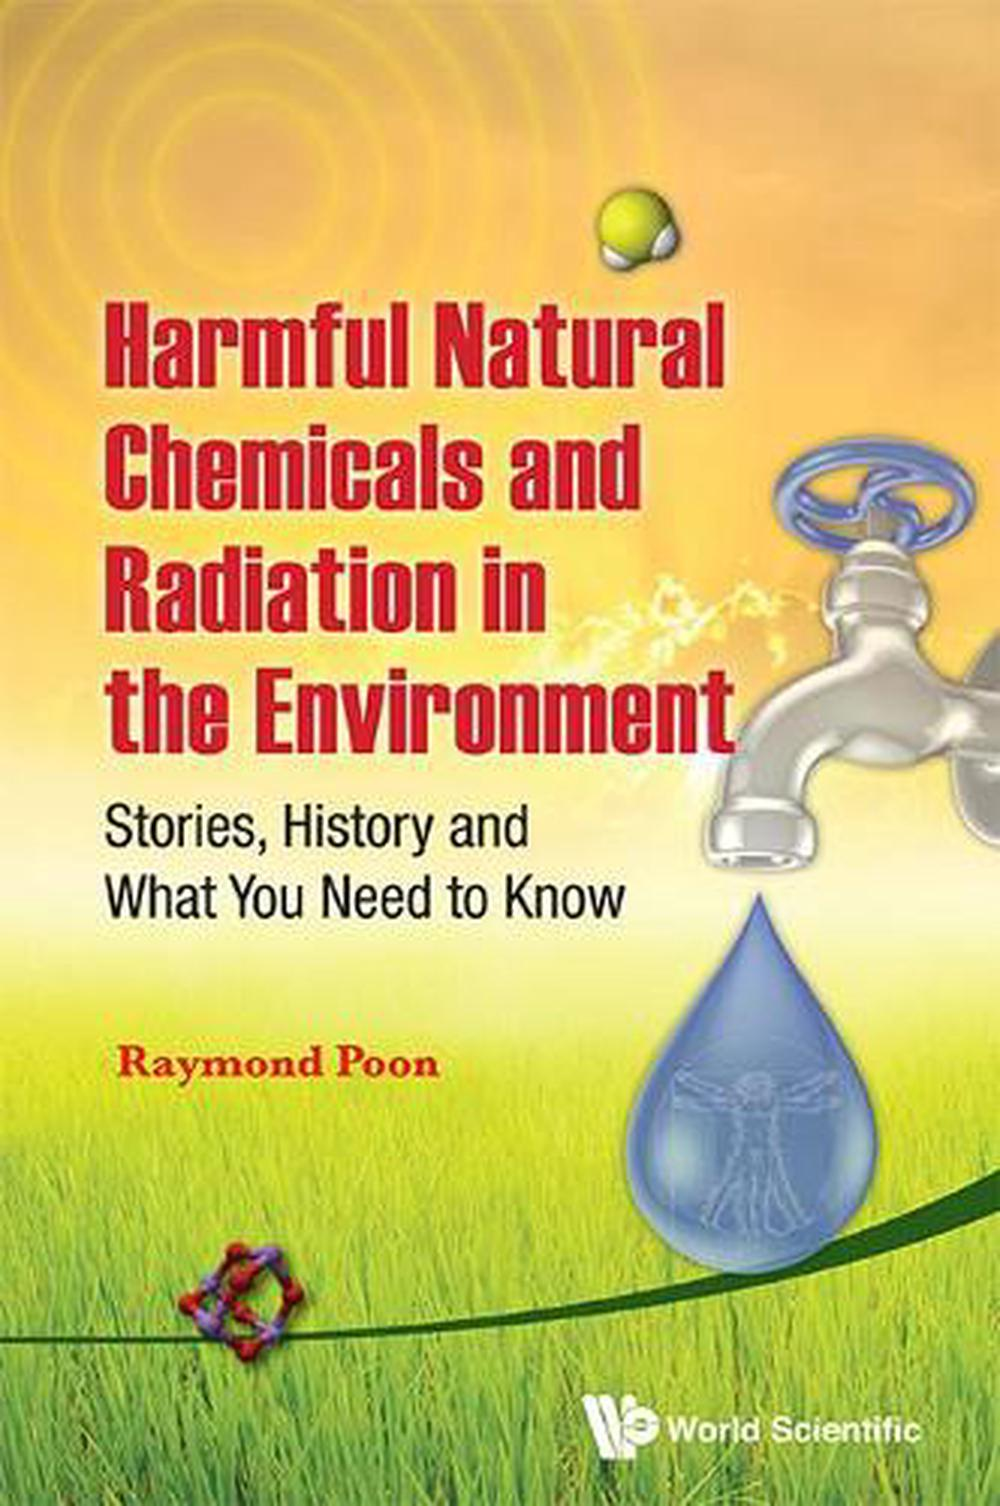 Harmful Natural Chemicals and Radiation in the Environment: Stories, History and